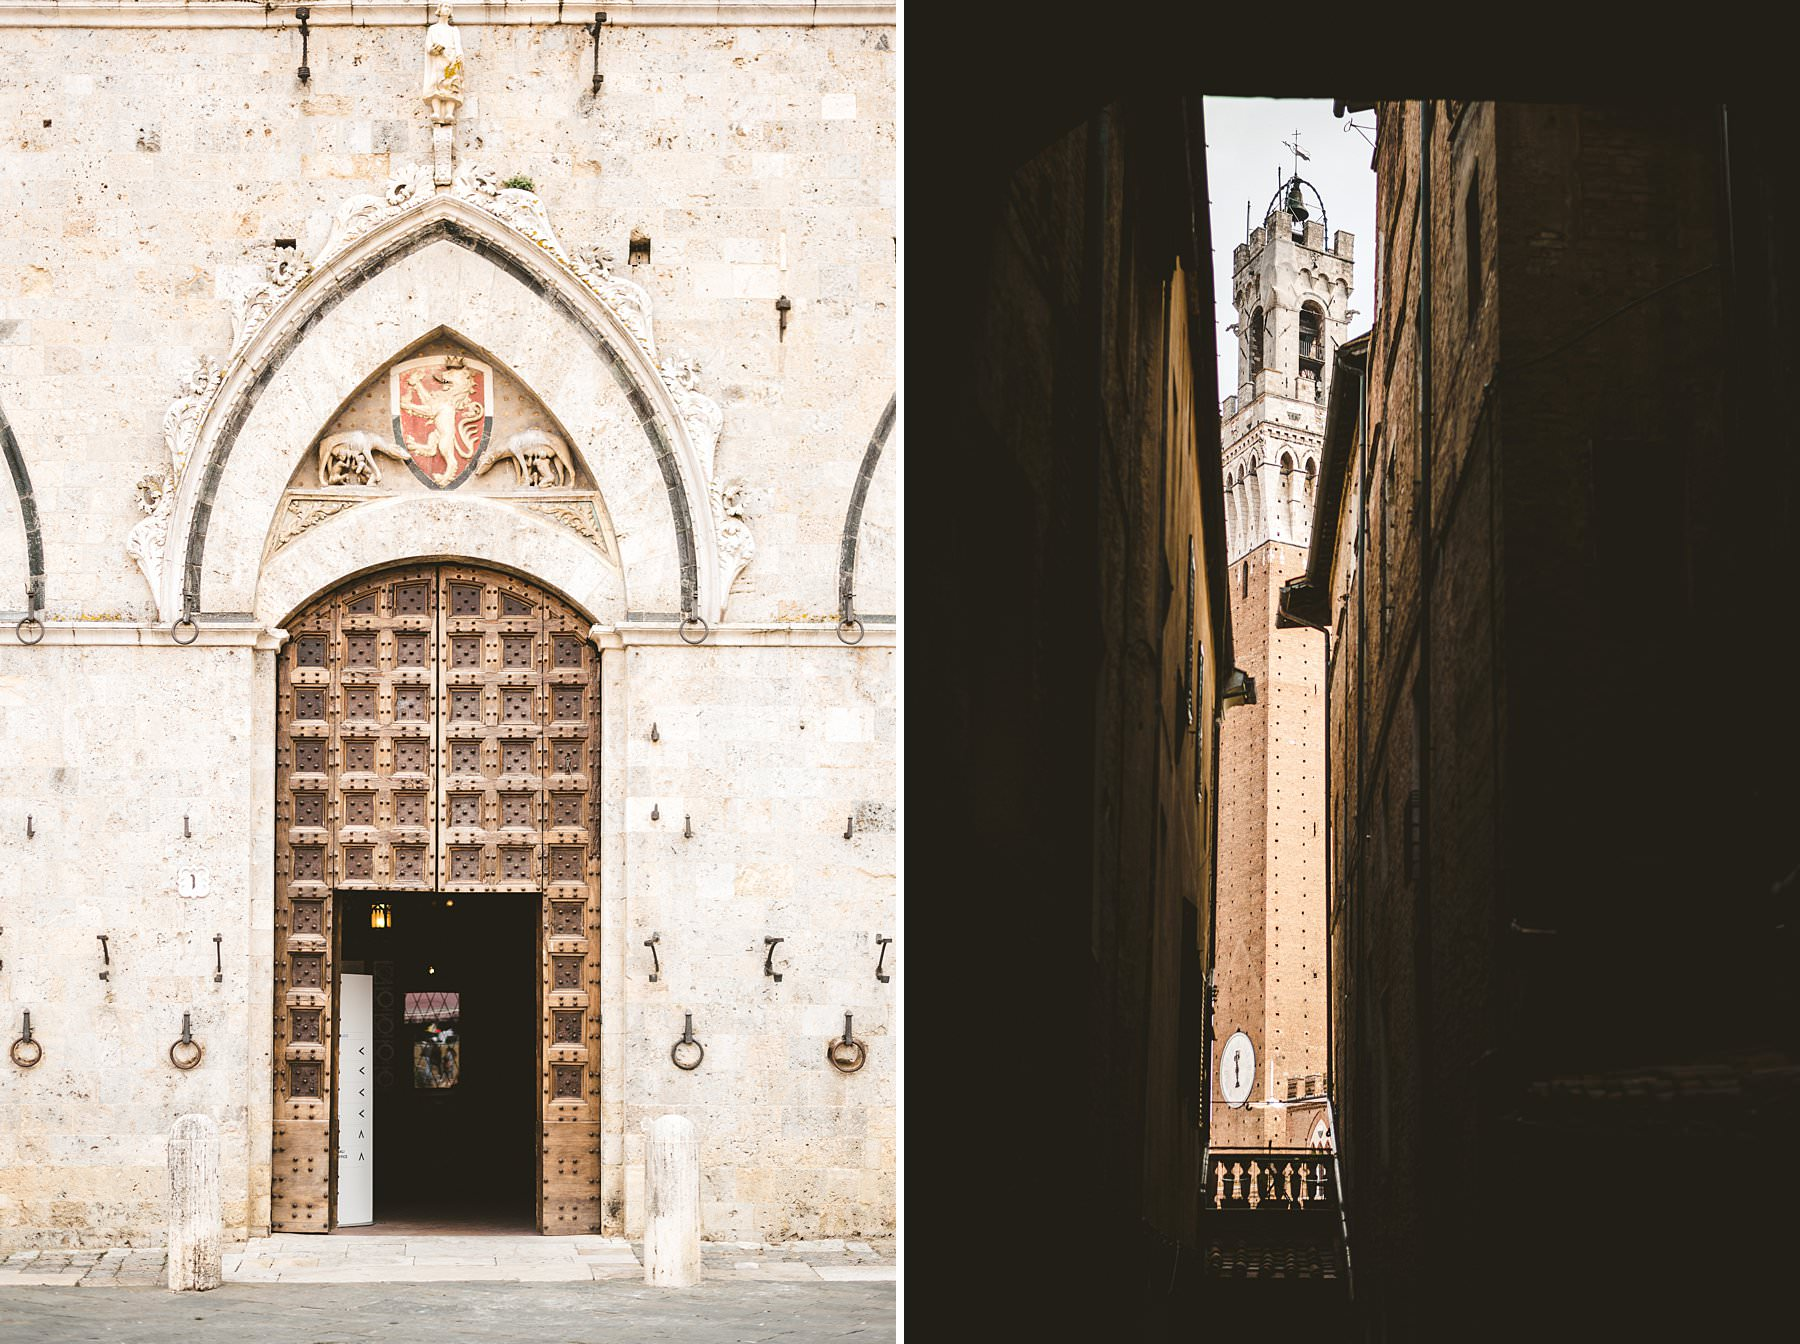 Getting married in Italy, surrounded by beauty. Town Hall of Siena one of the most iconic place in Tuscany. A perfect venue to get married in Italy